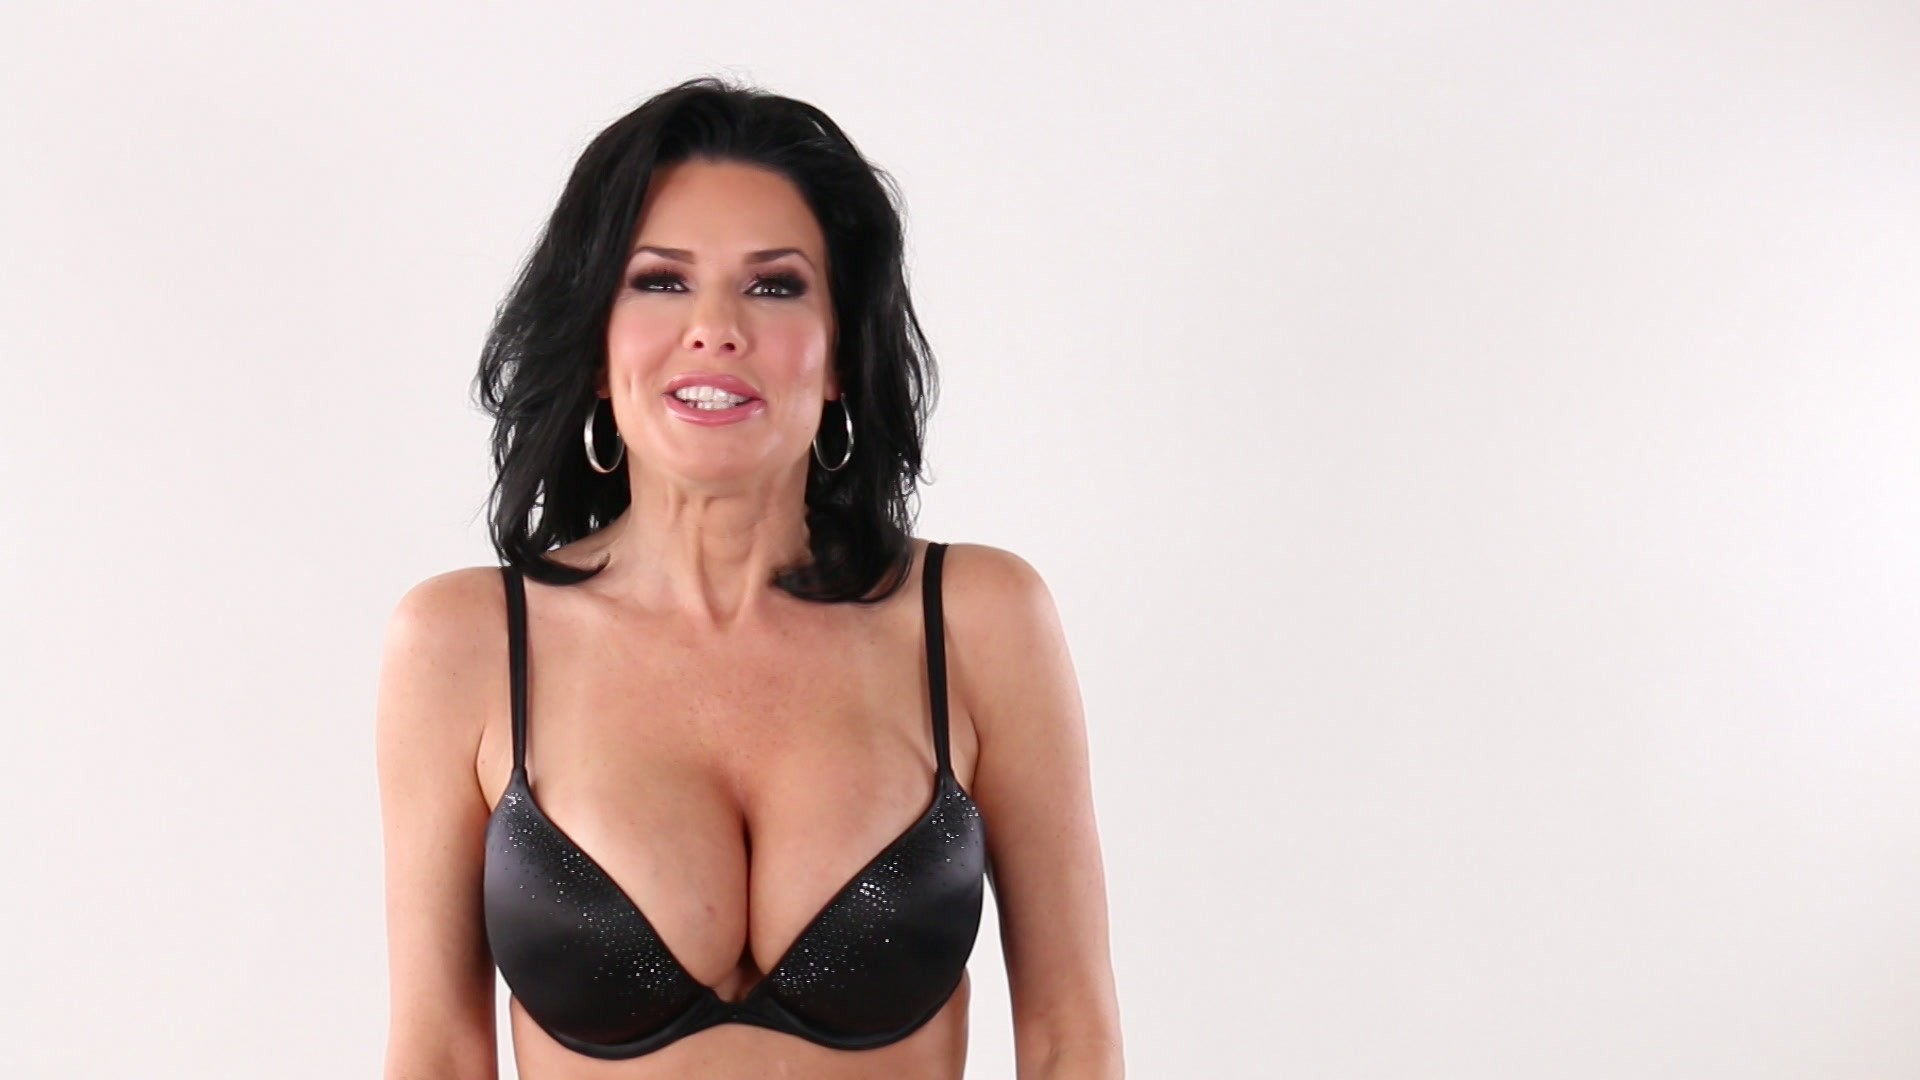 Scene with Veronica Avluv - image 2 out of 20